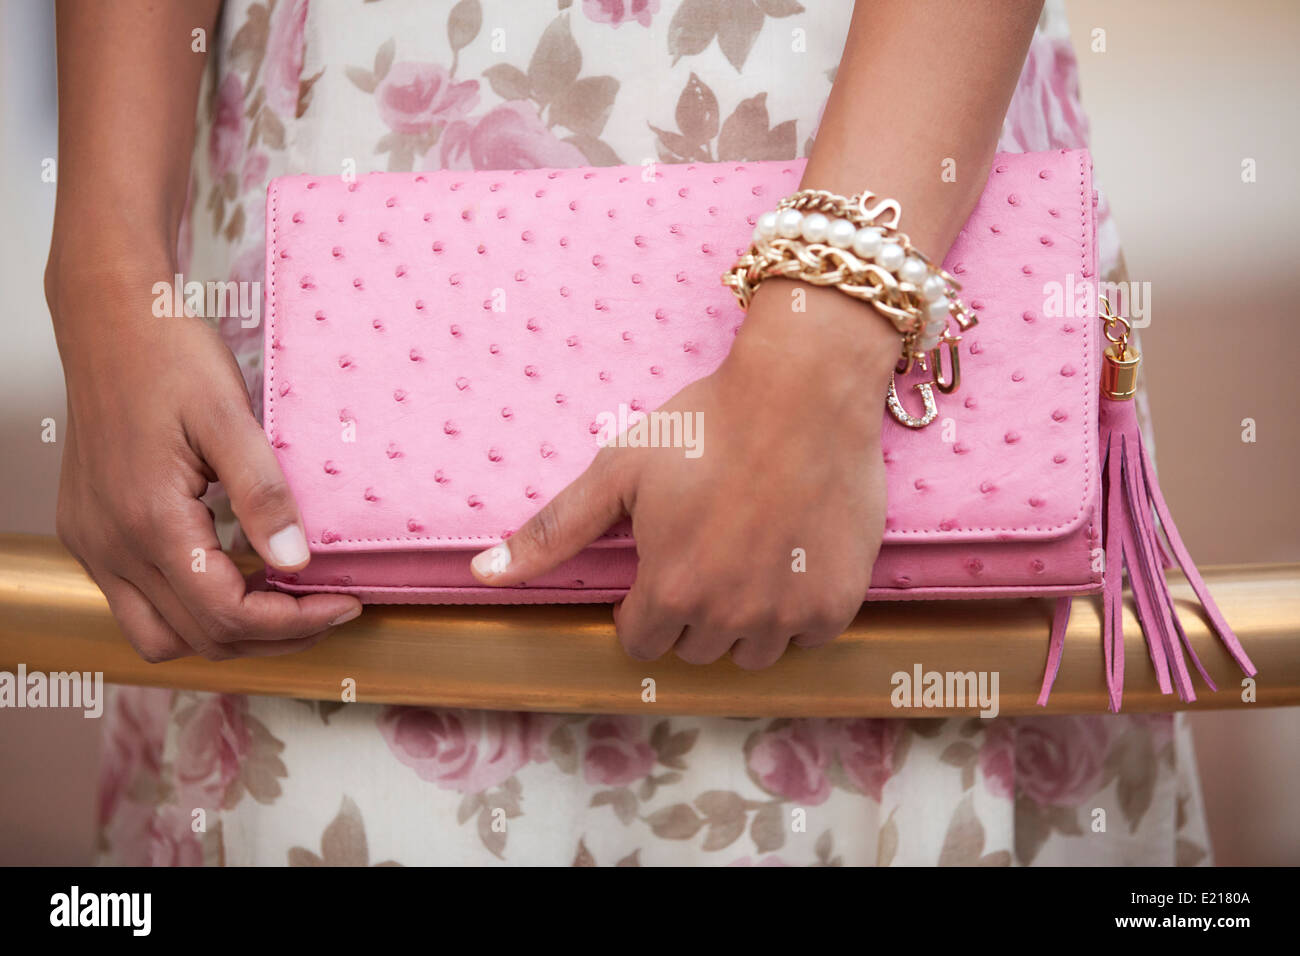 Clutch Bag Imágenes De Stock & Clutch Bag Fotos De Stock - Alamy